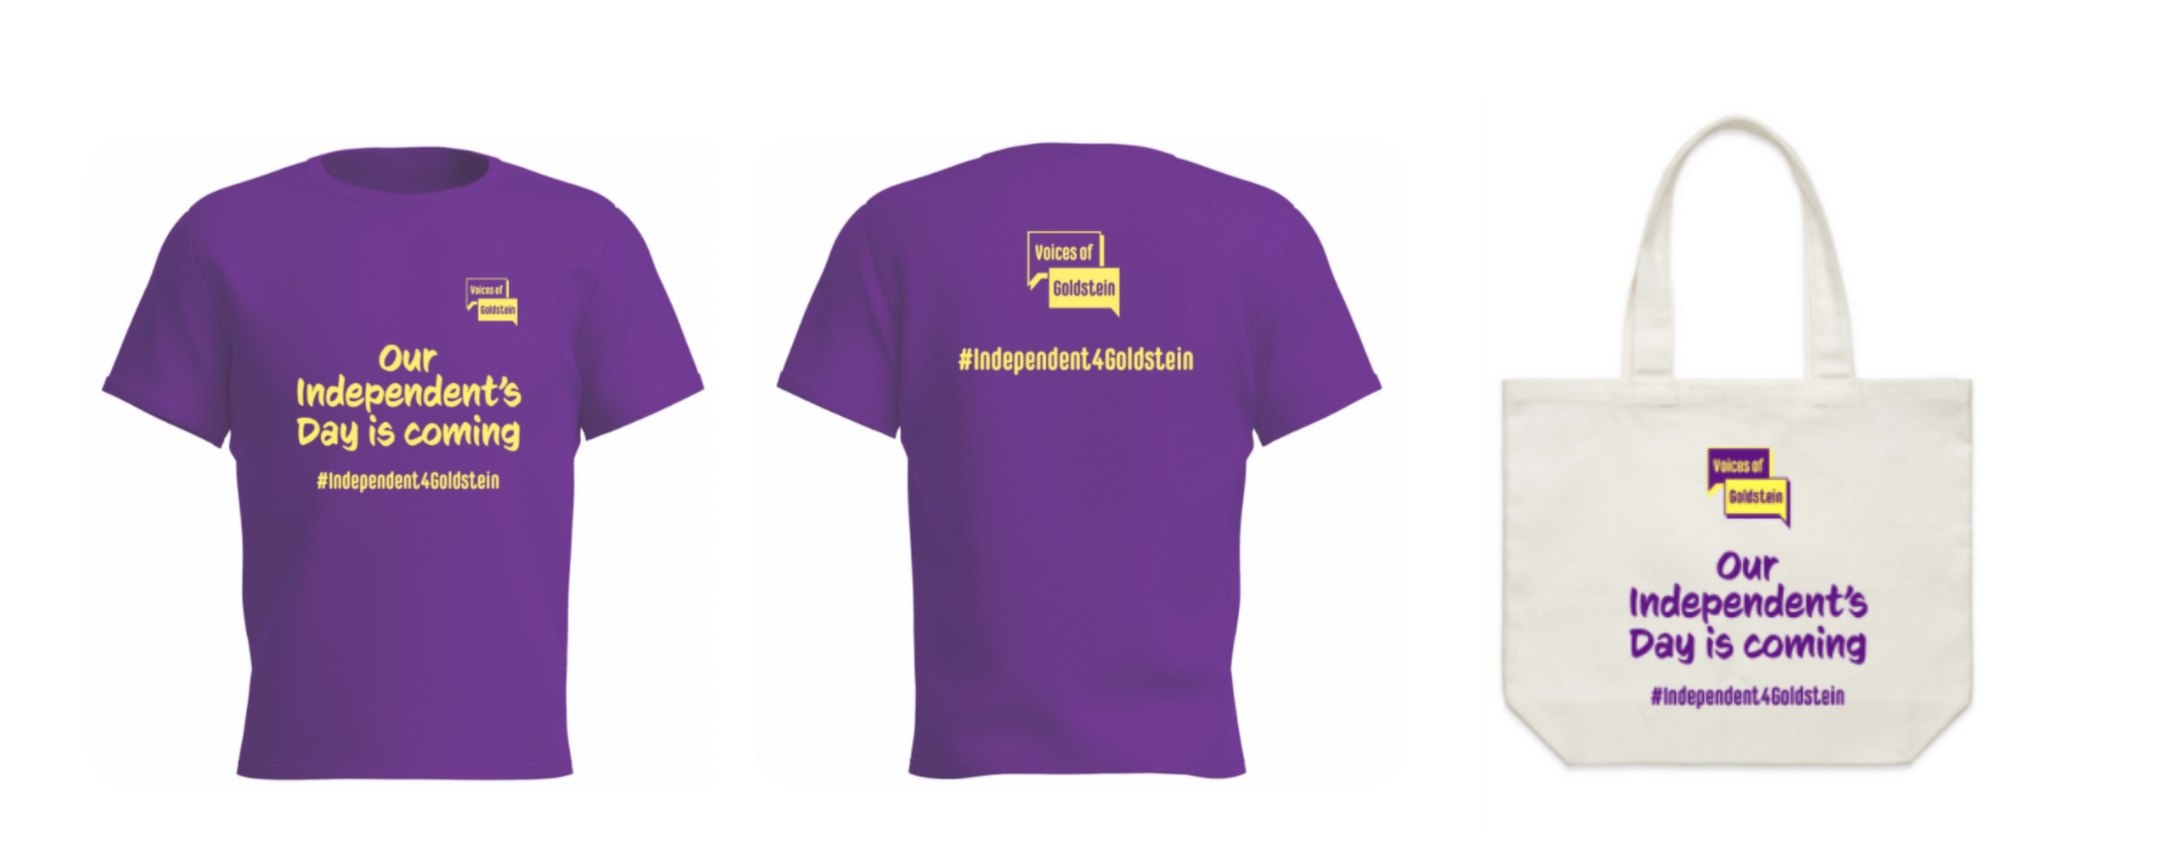 """Purple t-shirts and a tote bag with Voices of Goldstein logo and messaging on them: """"Our independent's day is coming #Independent4Goldstein"""""""